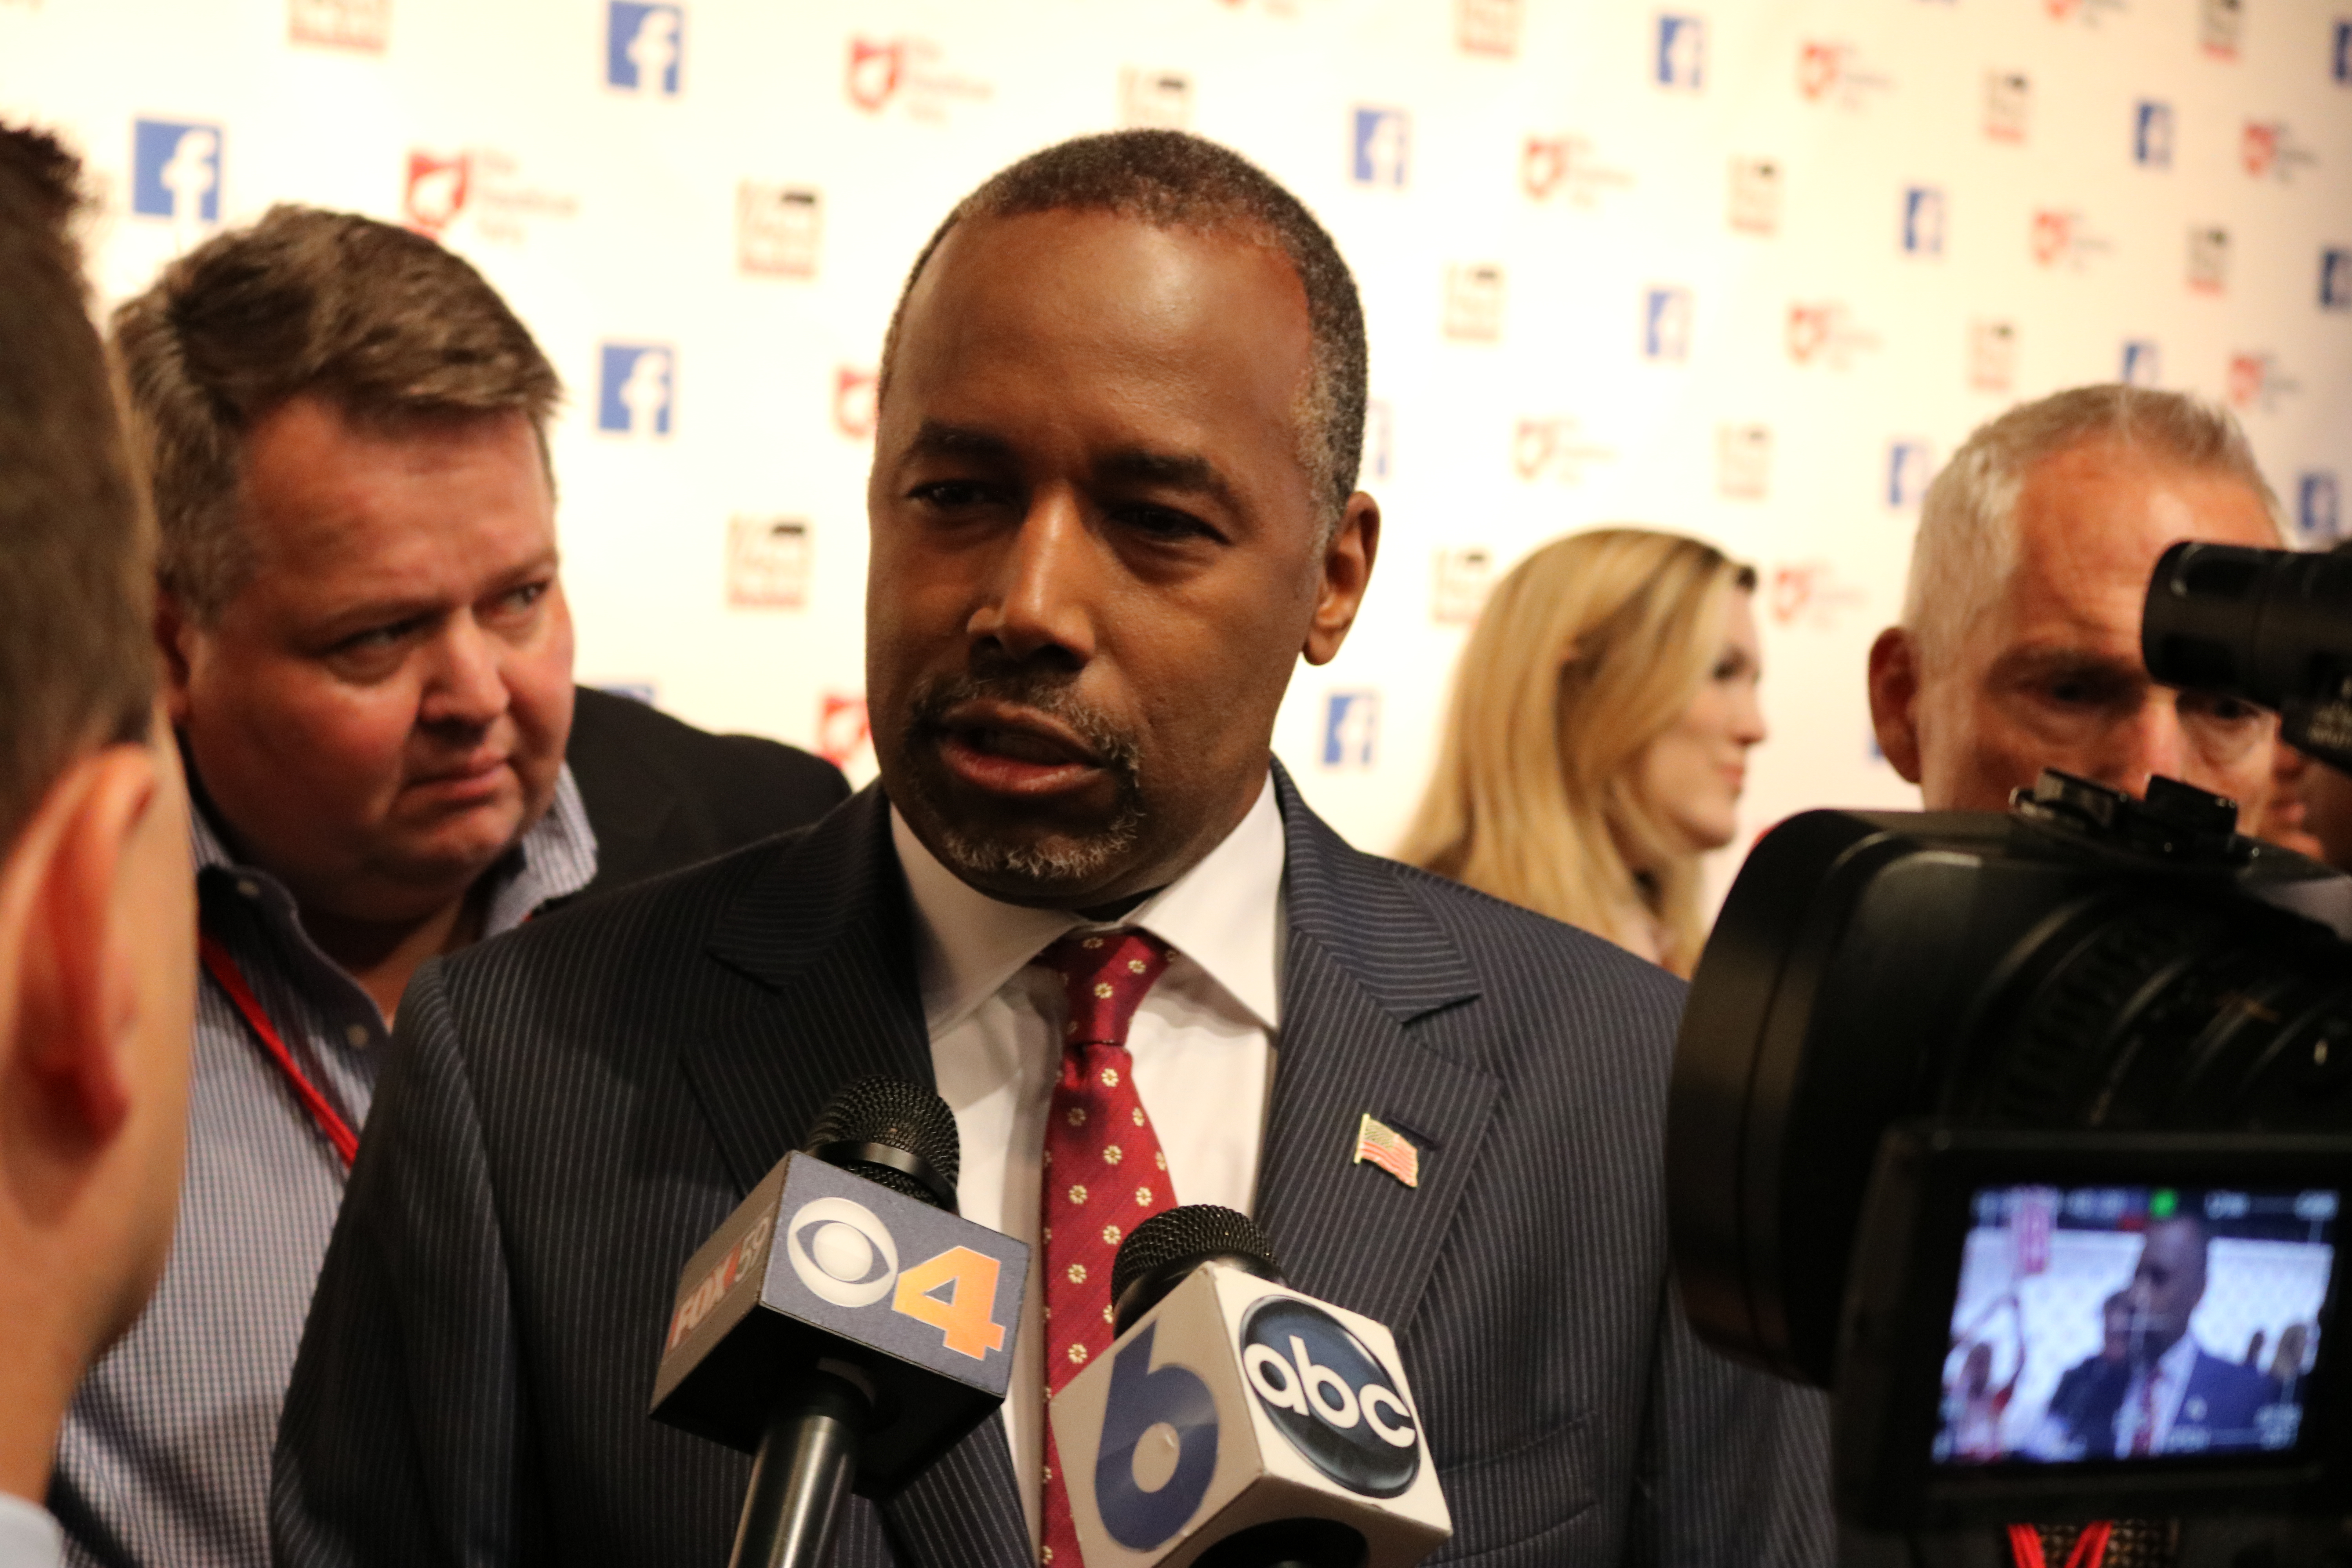 Ben Carson at the first Republican Primary Debate in Cleveland, Photo Courtesy of Haddad Media